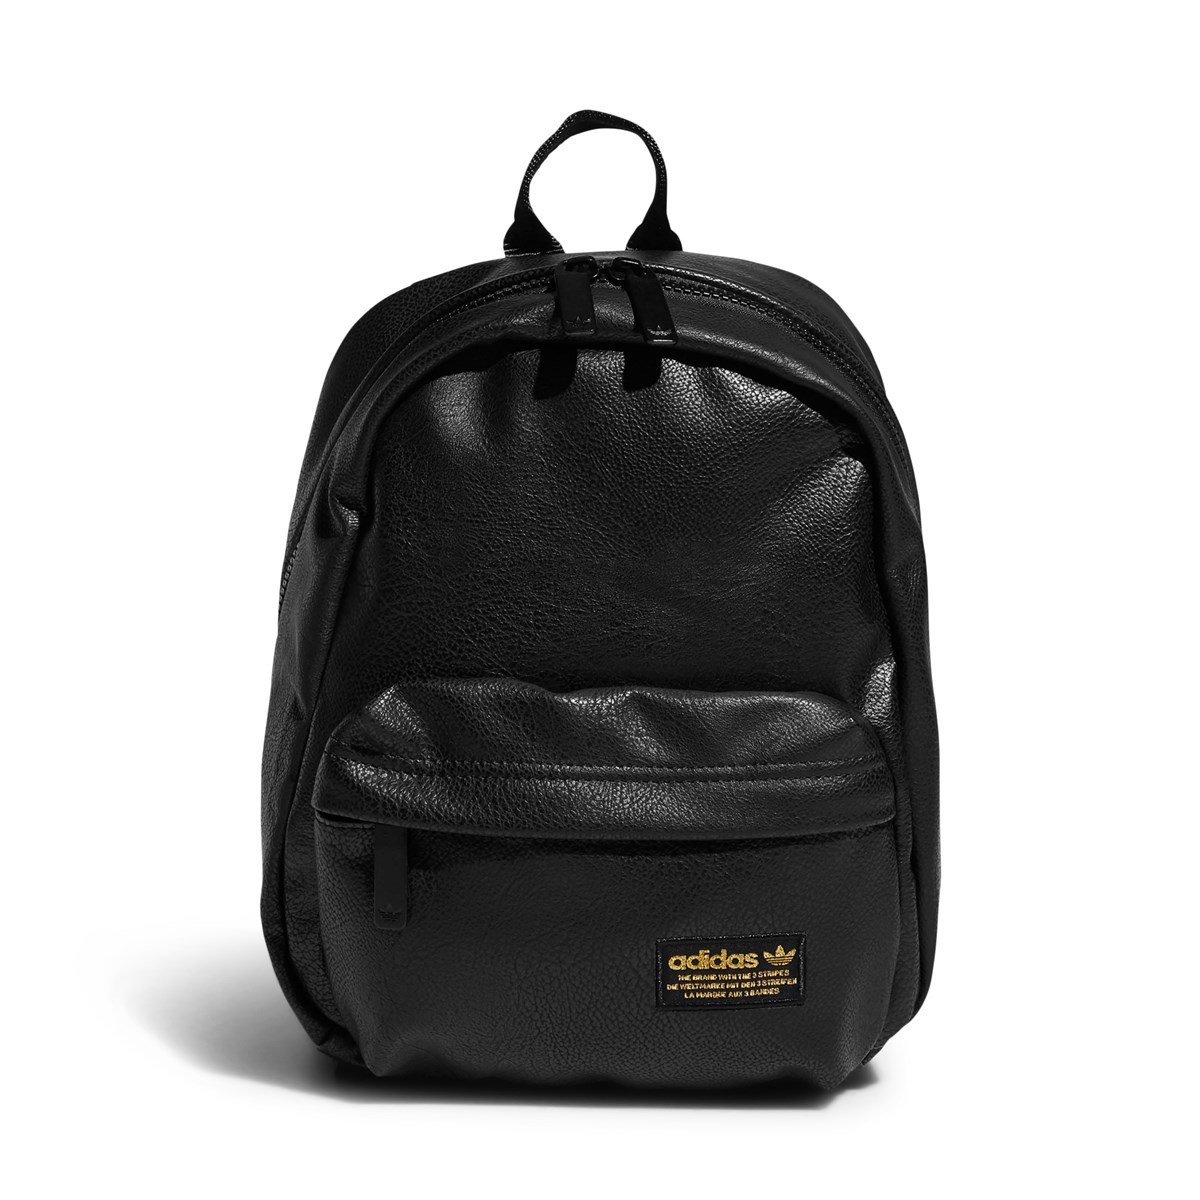 41ee6fd907 AC Fashion Classic Backpack in Black. Previous. default view  ATL1  ATL2